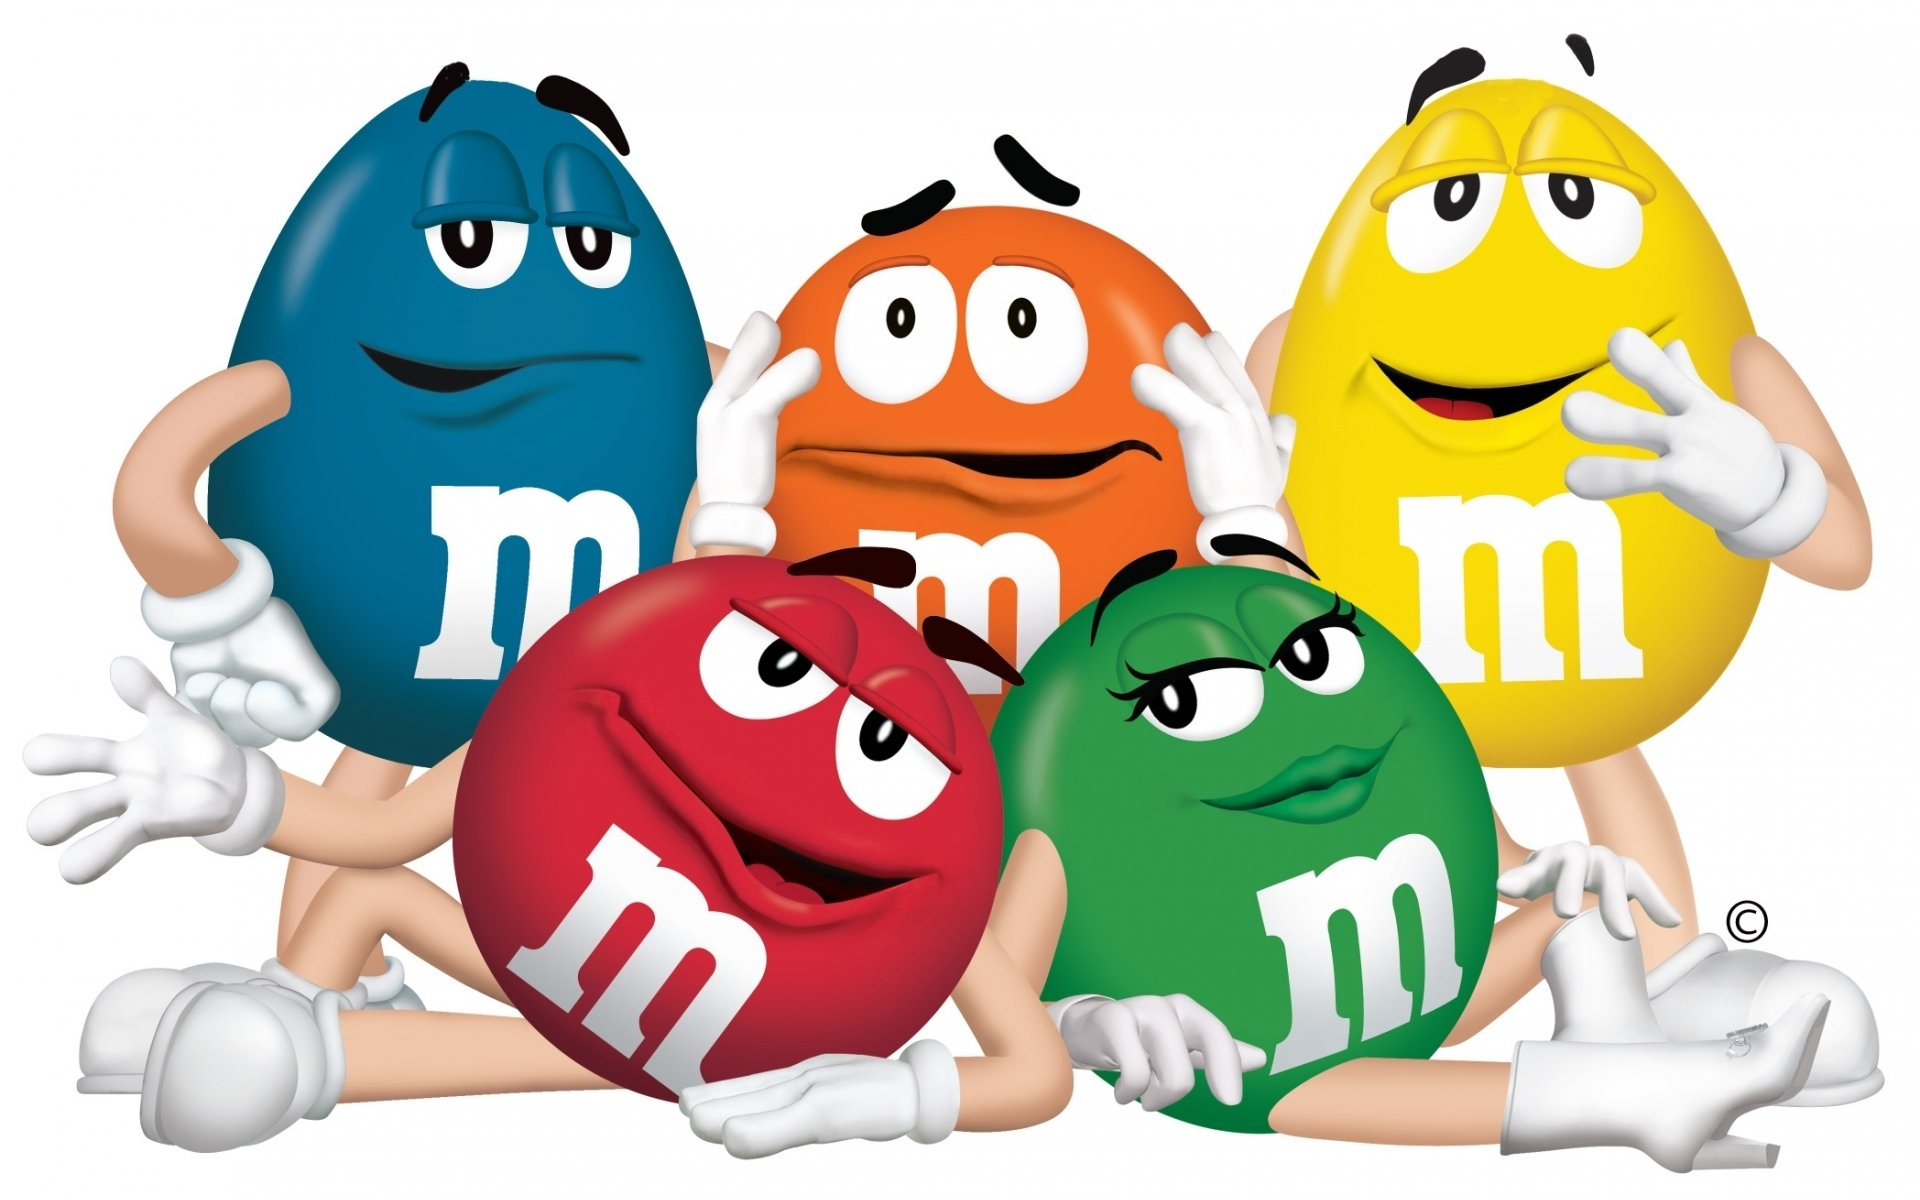 M&m's clipart wallpaper M&m's 8 Wallpaper Wallpapers Background